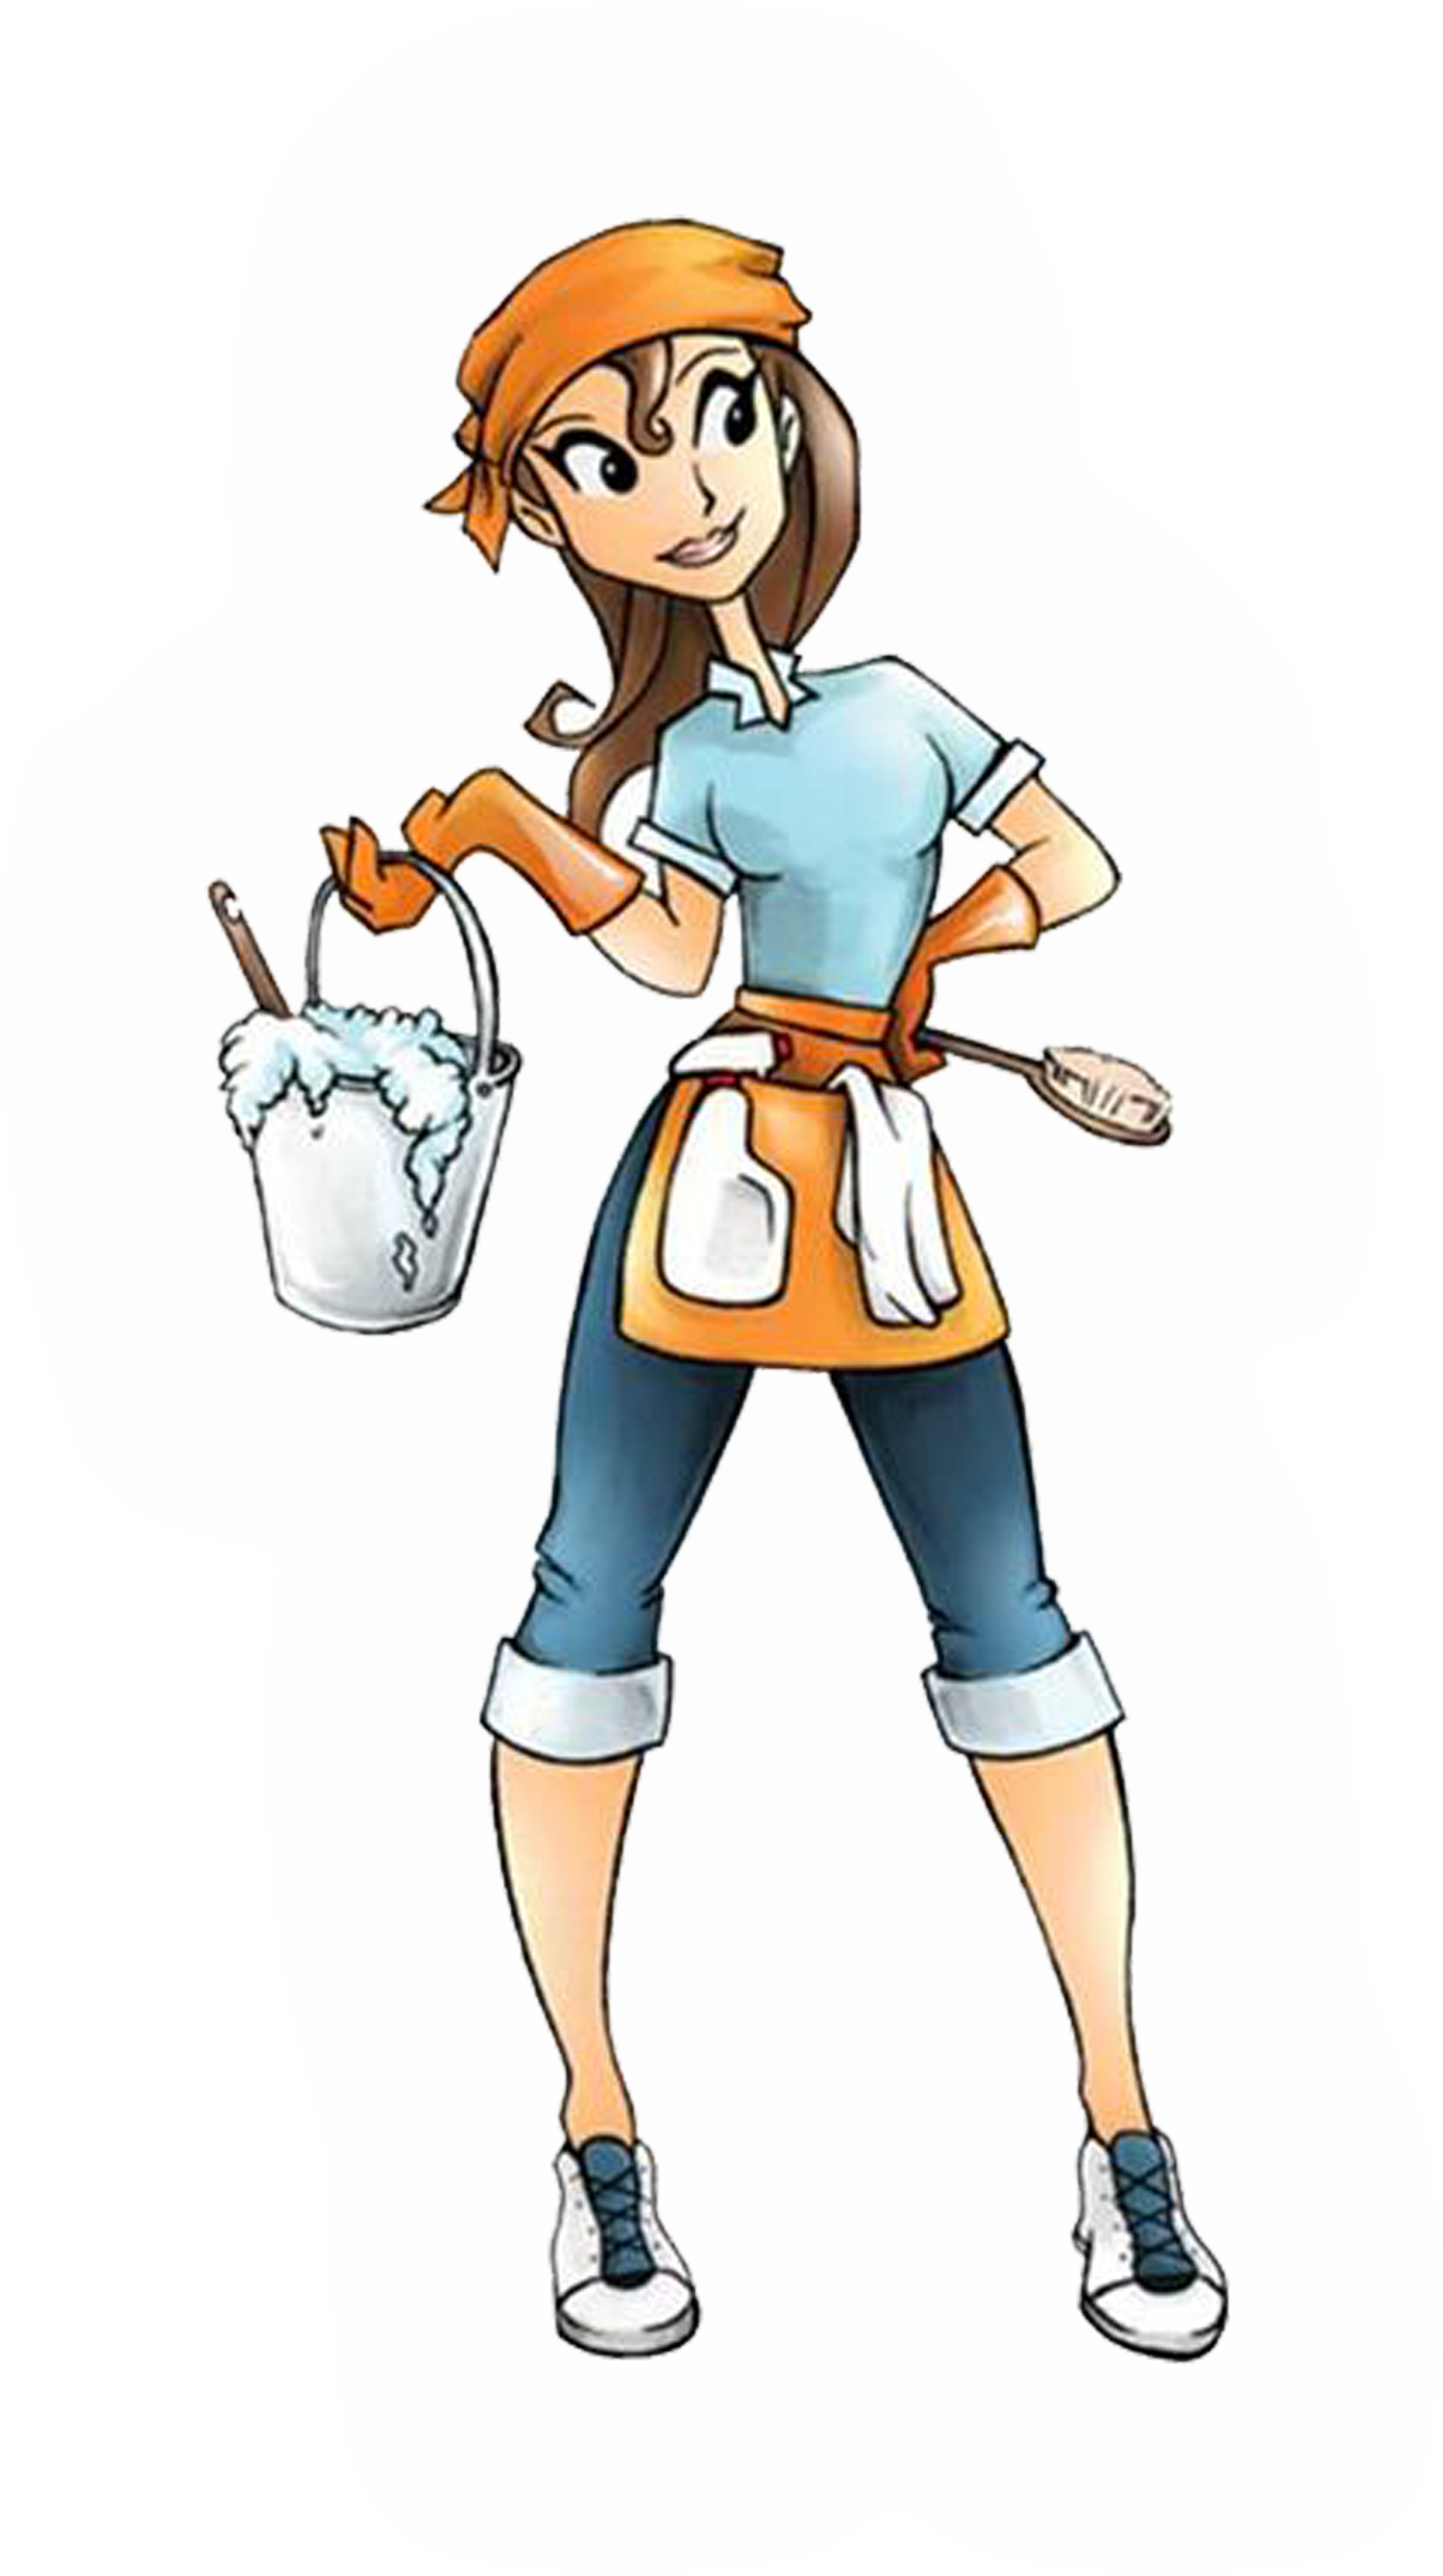 Easy breezy cleaning tips. Employee clipart store owner